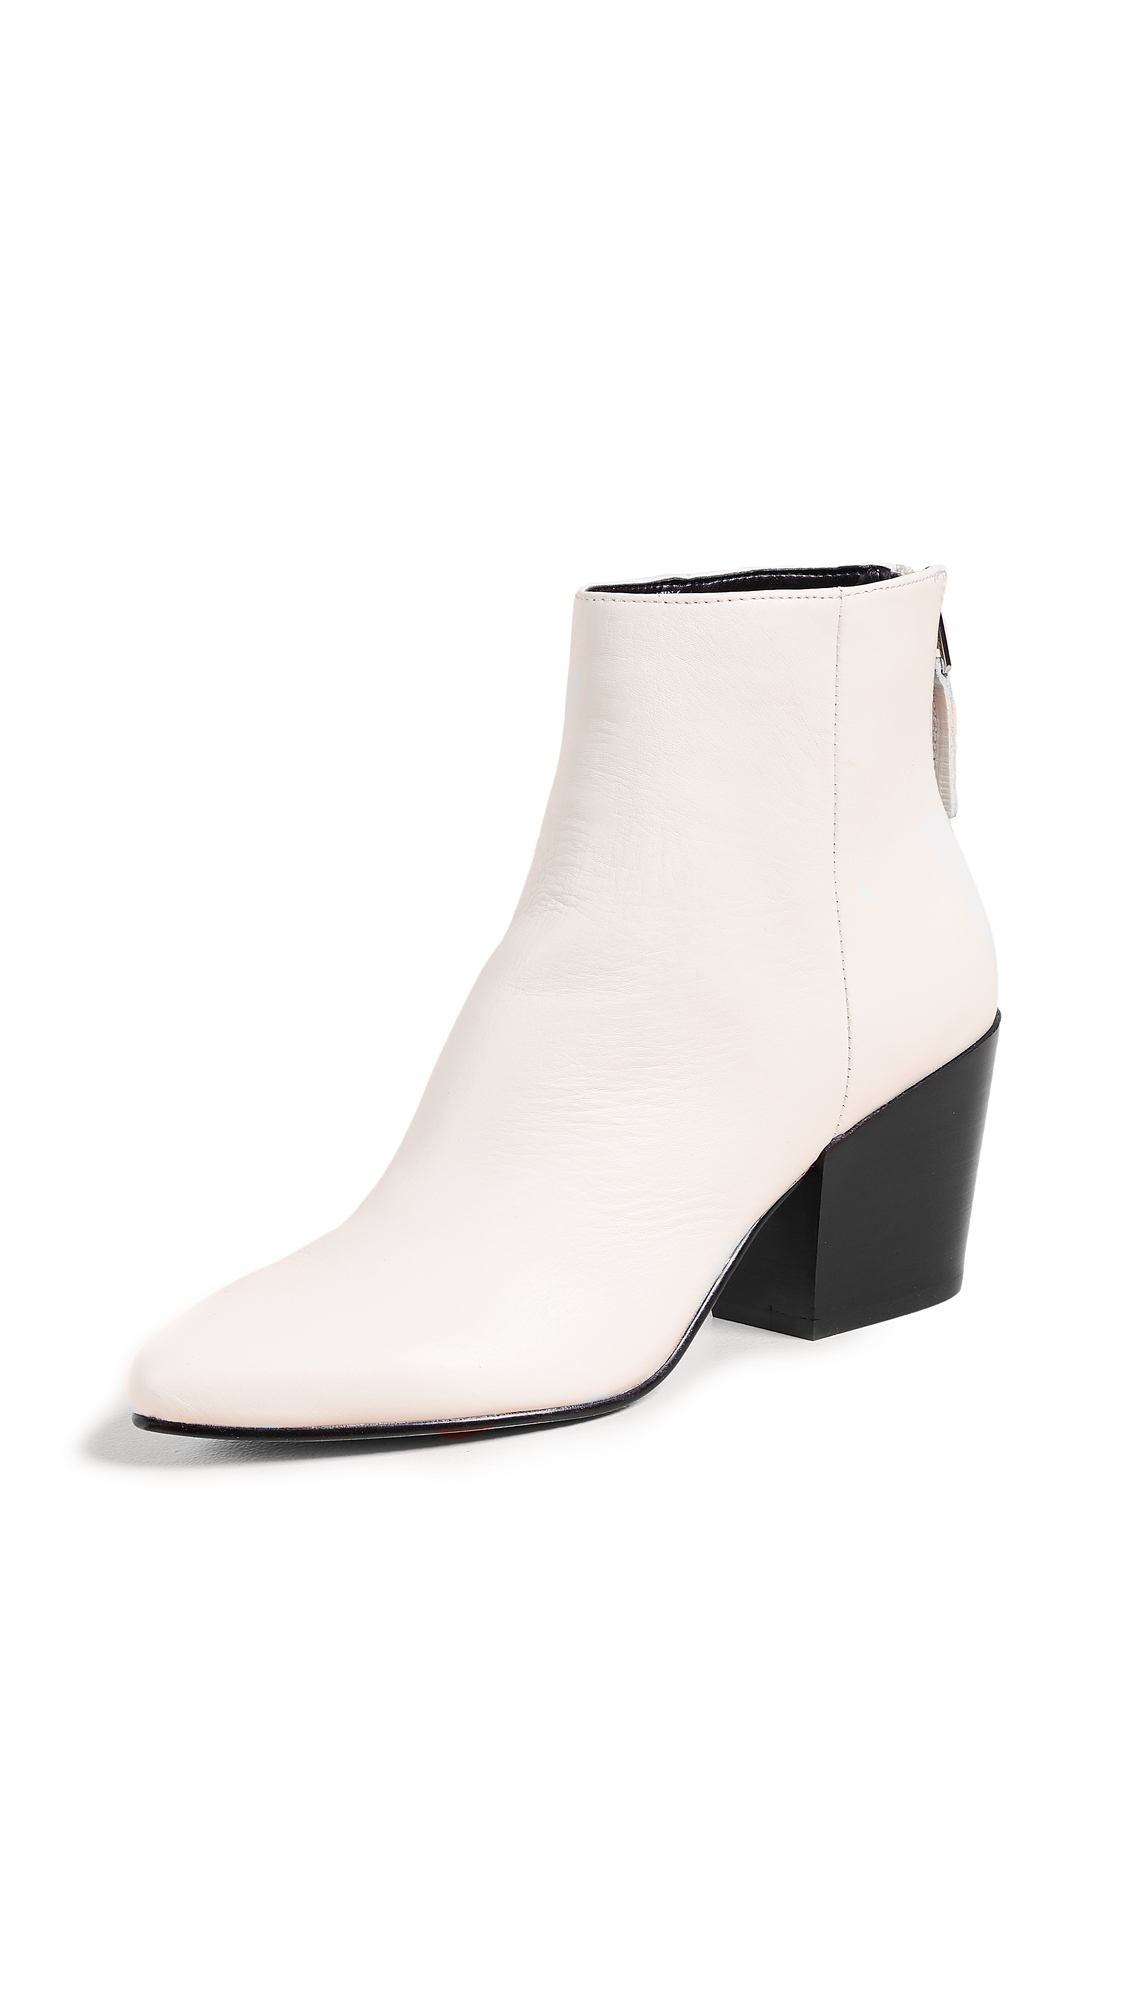 Dolce Vita Coltyn Point Toe Booties - Off White